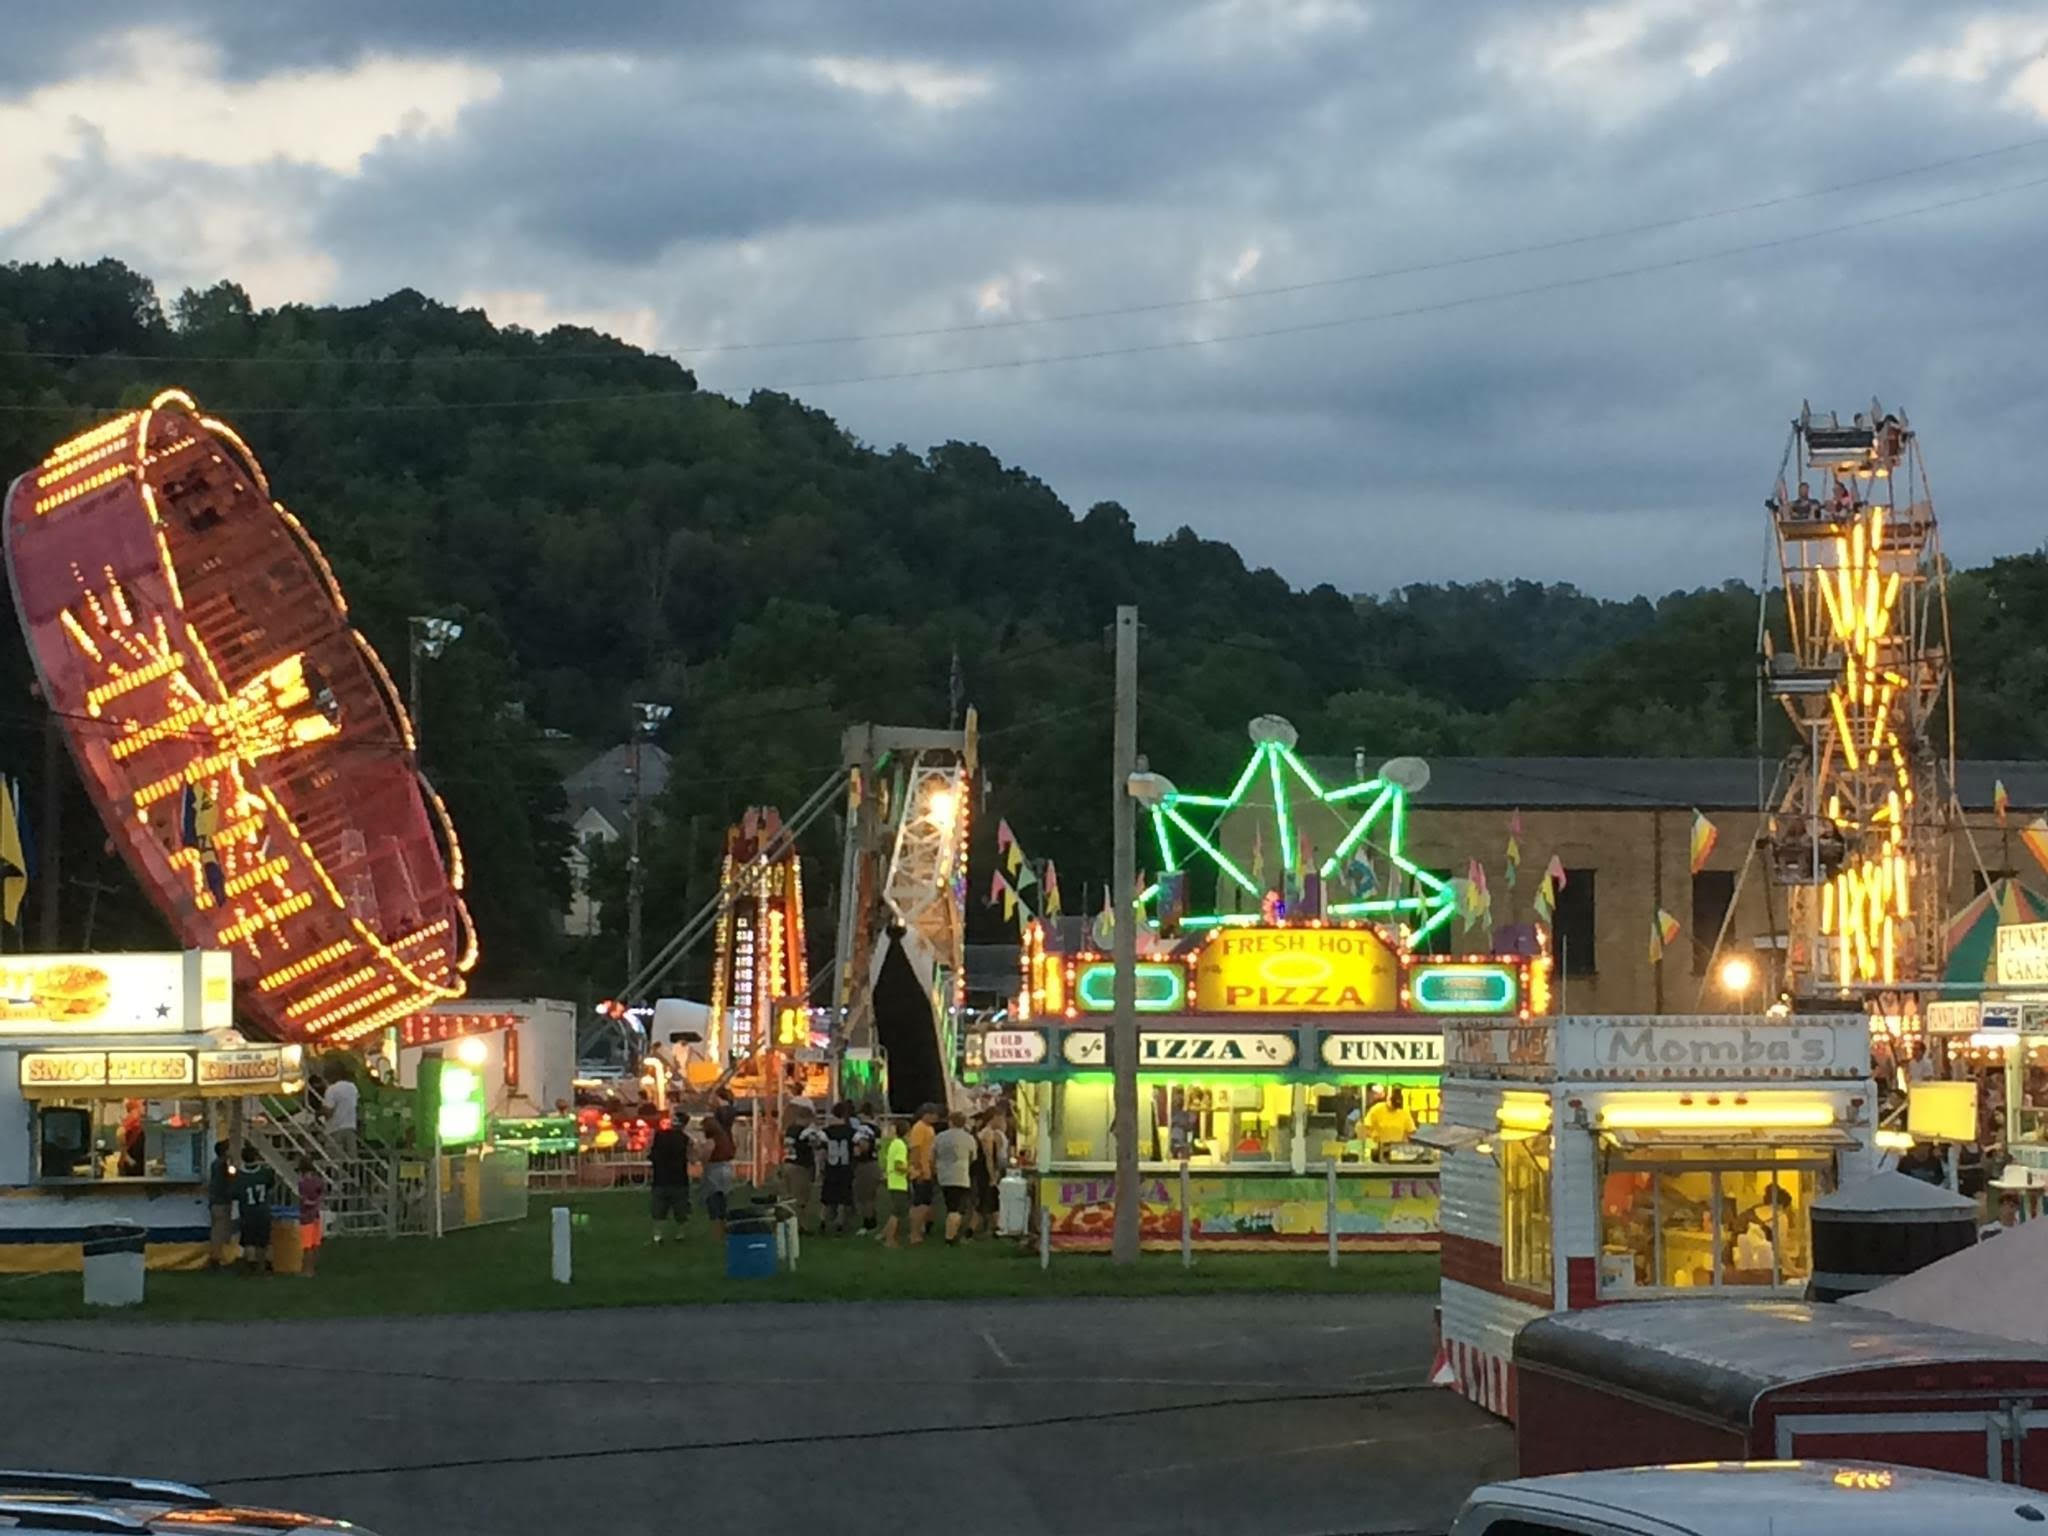 fair rides and carnival food